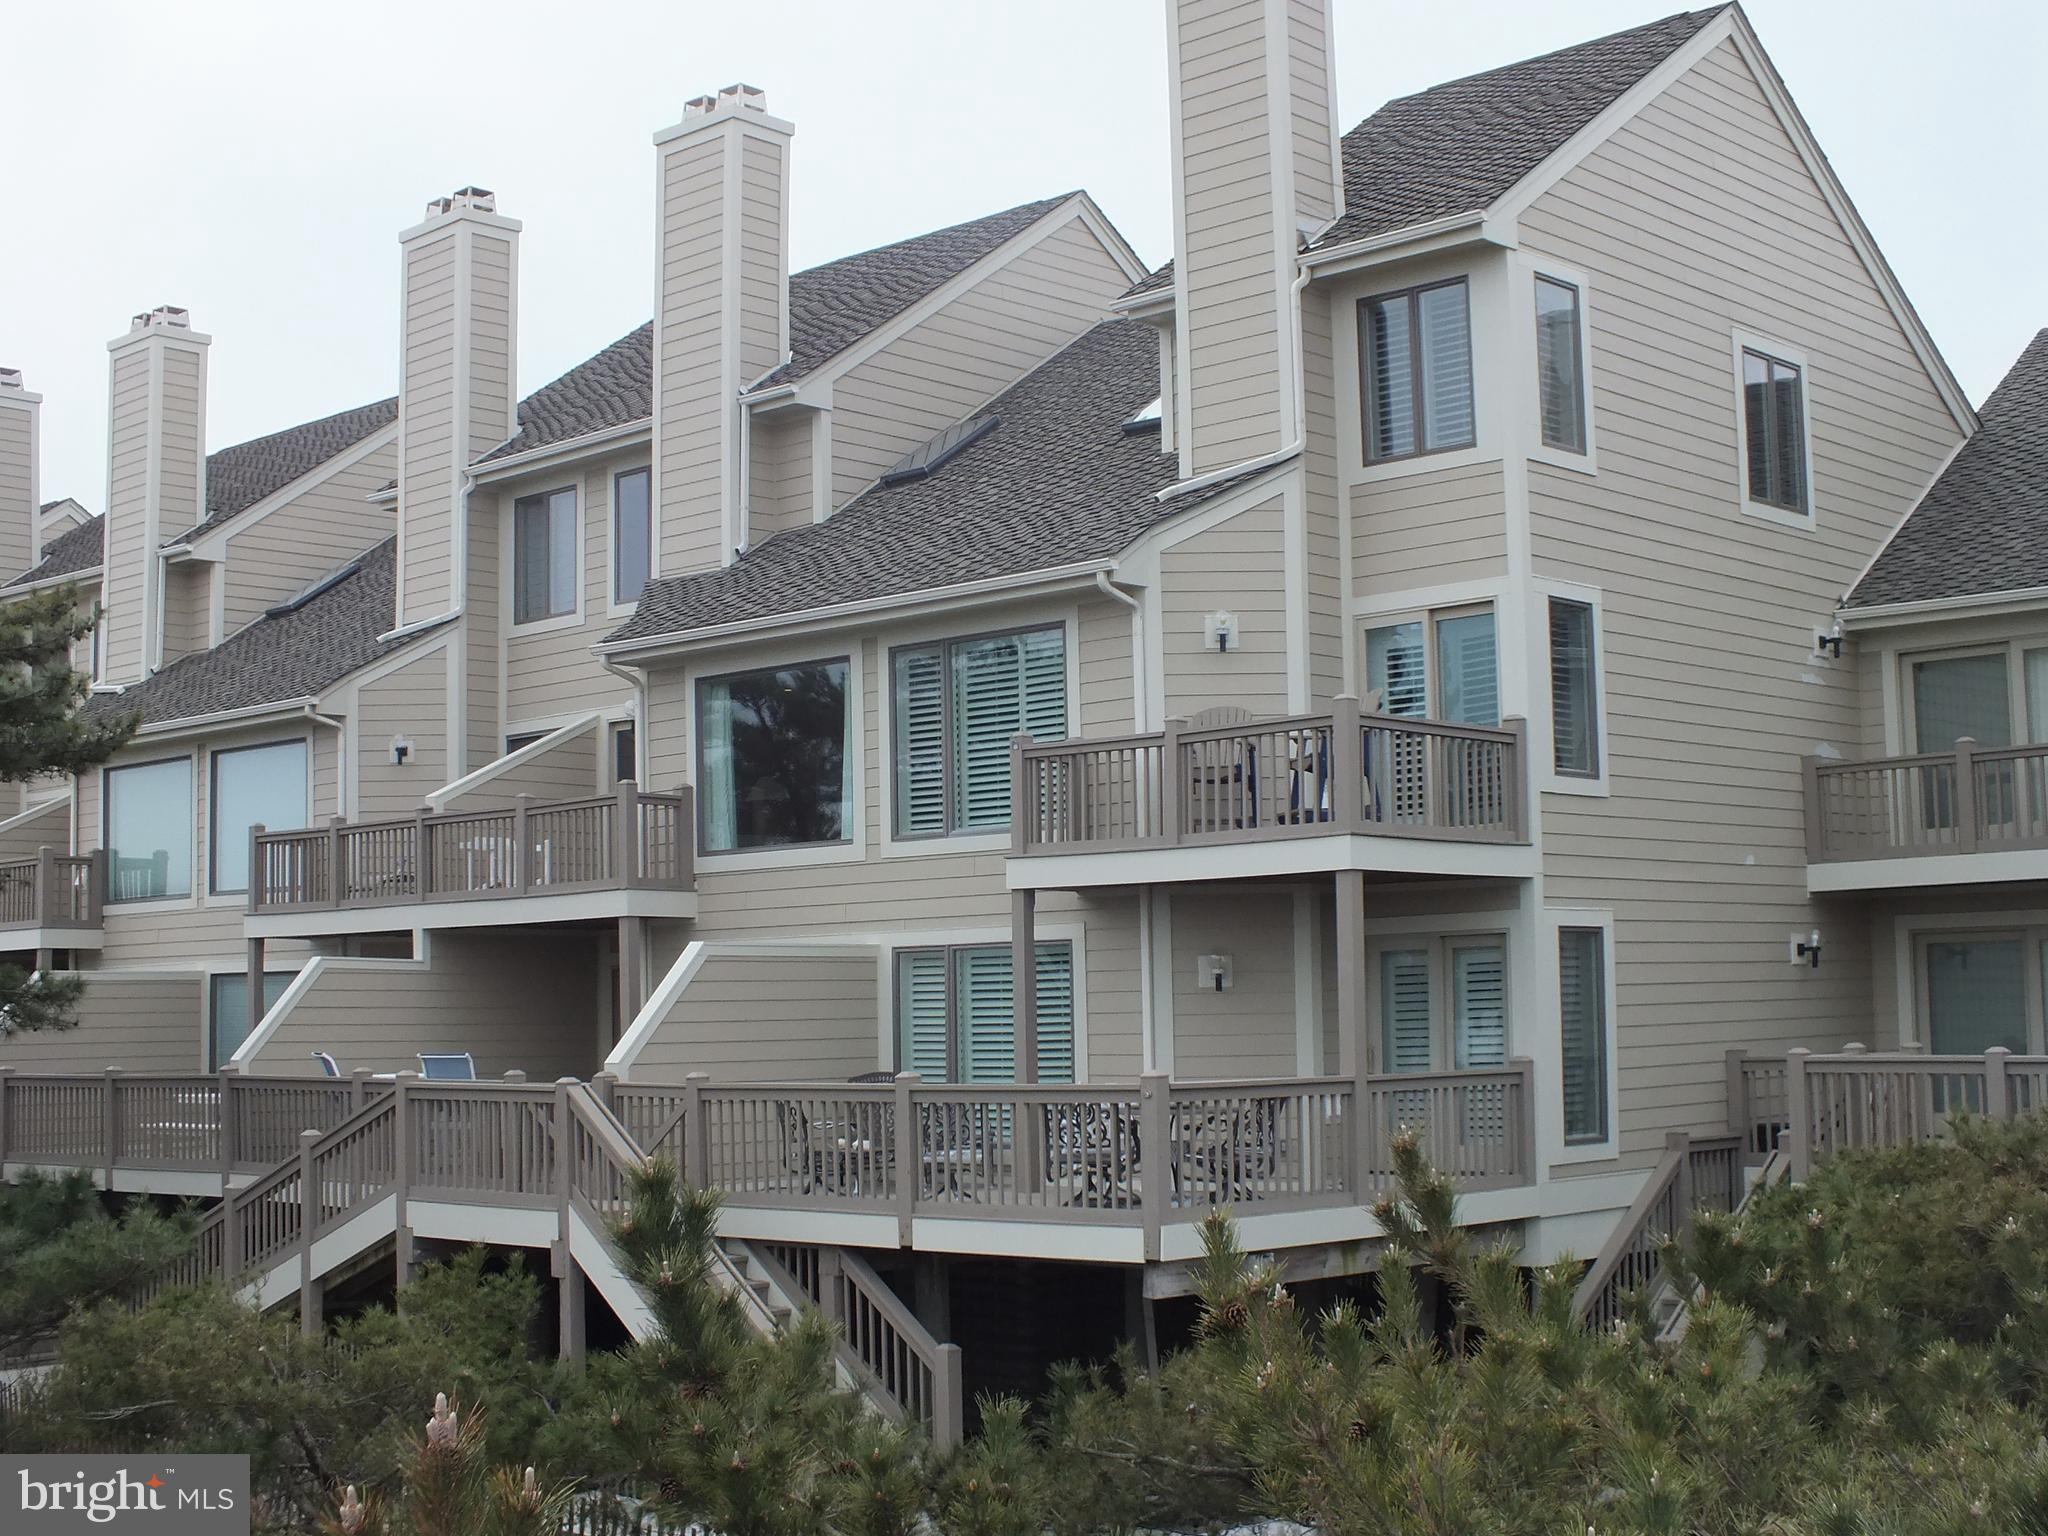 25 Kings Grant: A Dream Come TrueImagine sitting on your deck looking at the ocean as you listen to